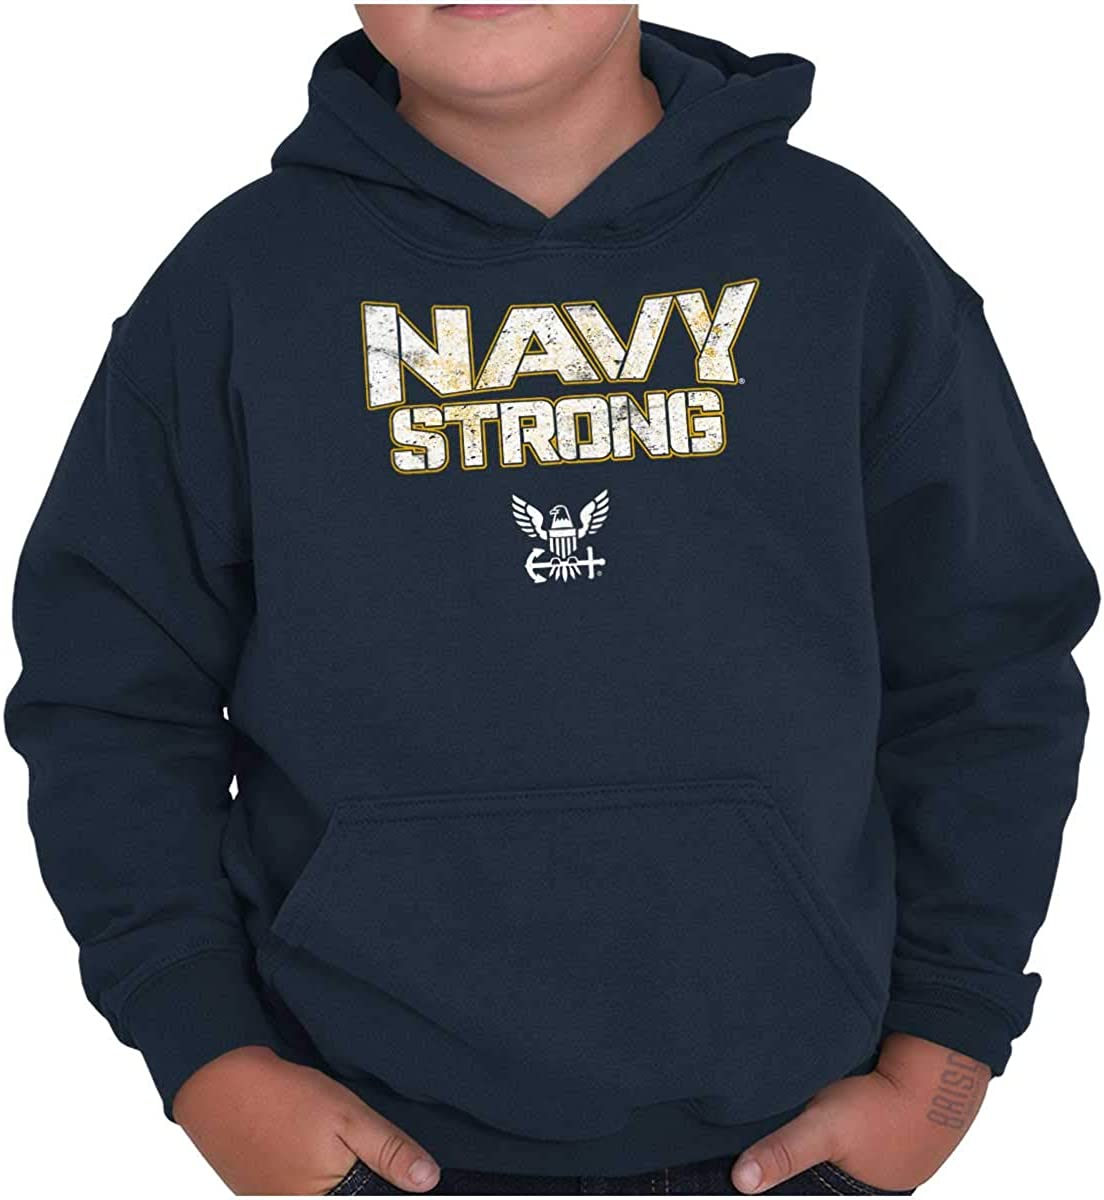 Navy Strong United States Military Youth Hoodie Boy Girl